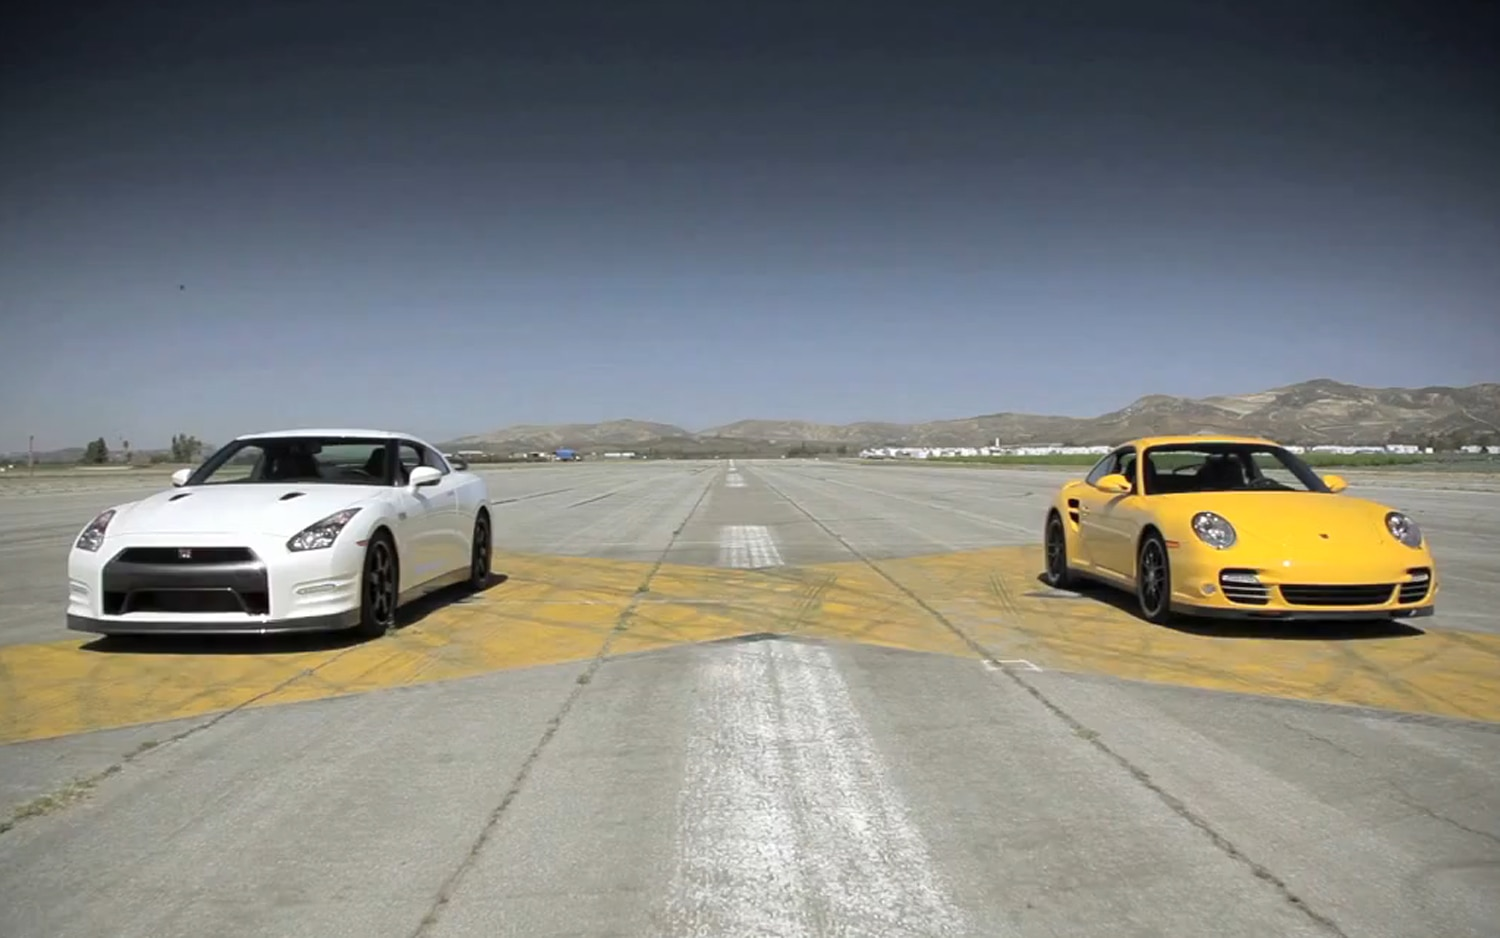 2013 Nissan GT R Black Edition Vs 2012 Porsche 911 Turbo S Front View Drag Strip1